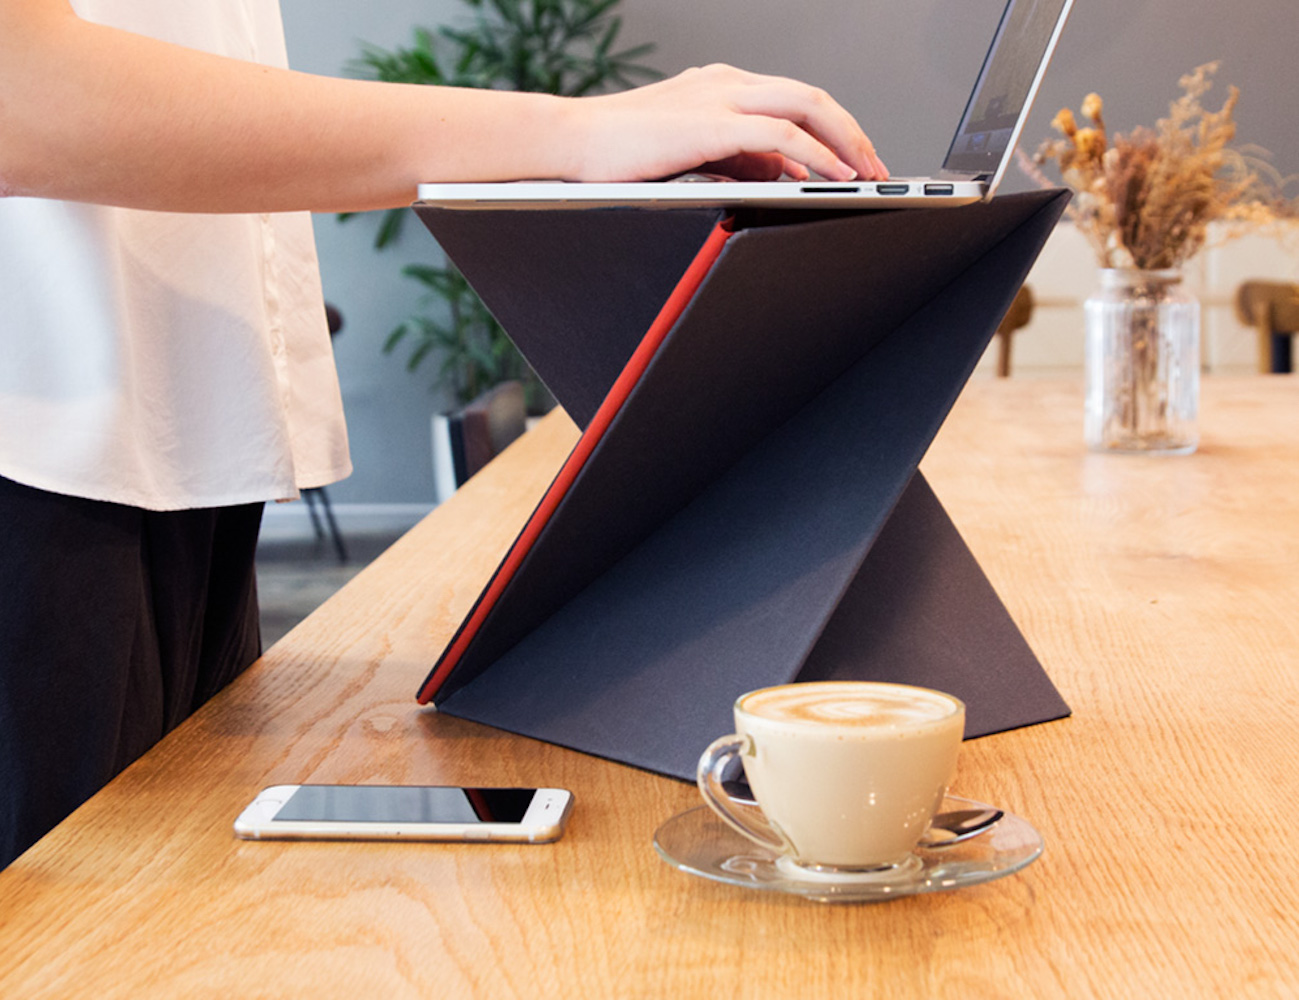 LEVIT8 – The Flat Folding Portable Standing Desk